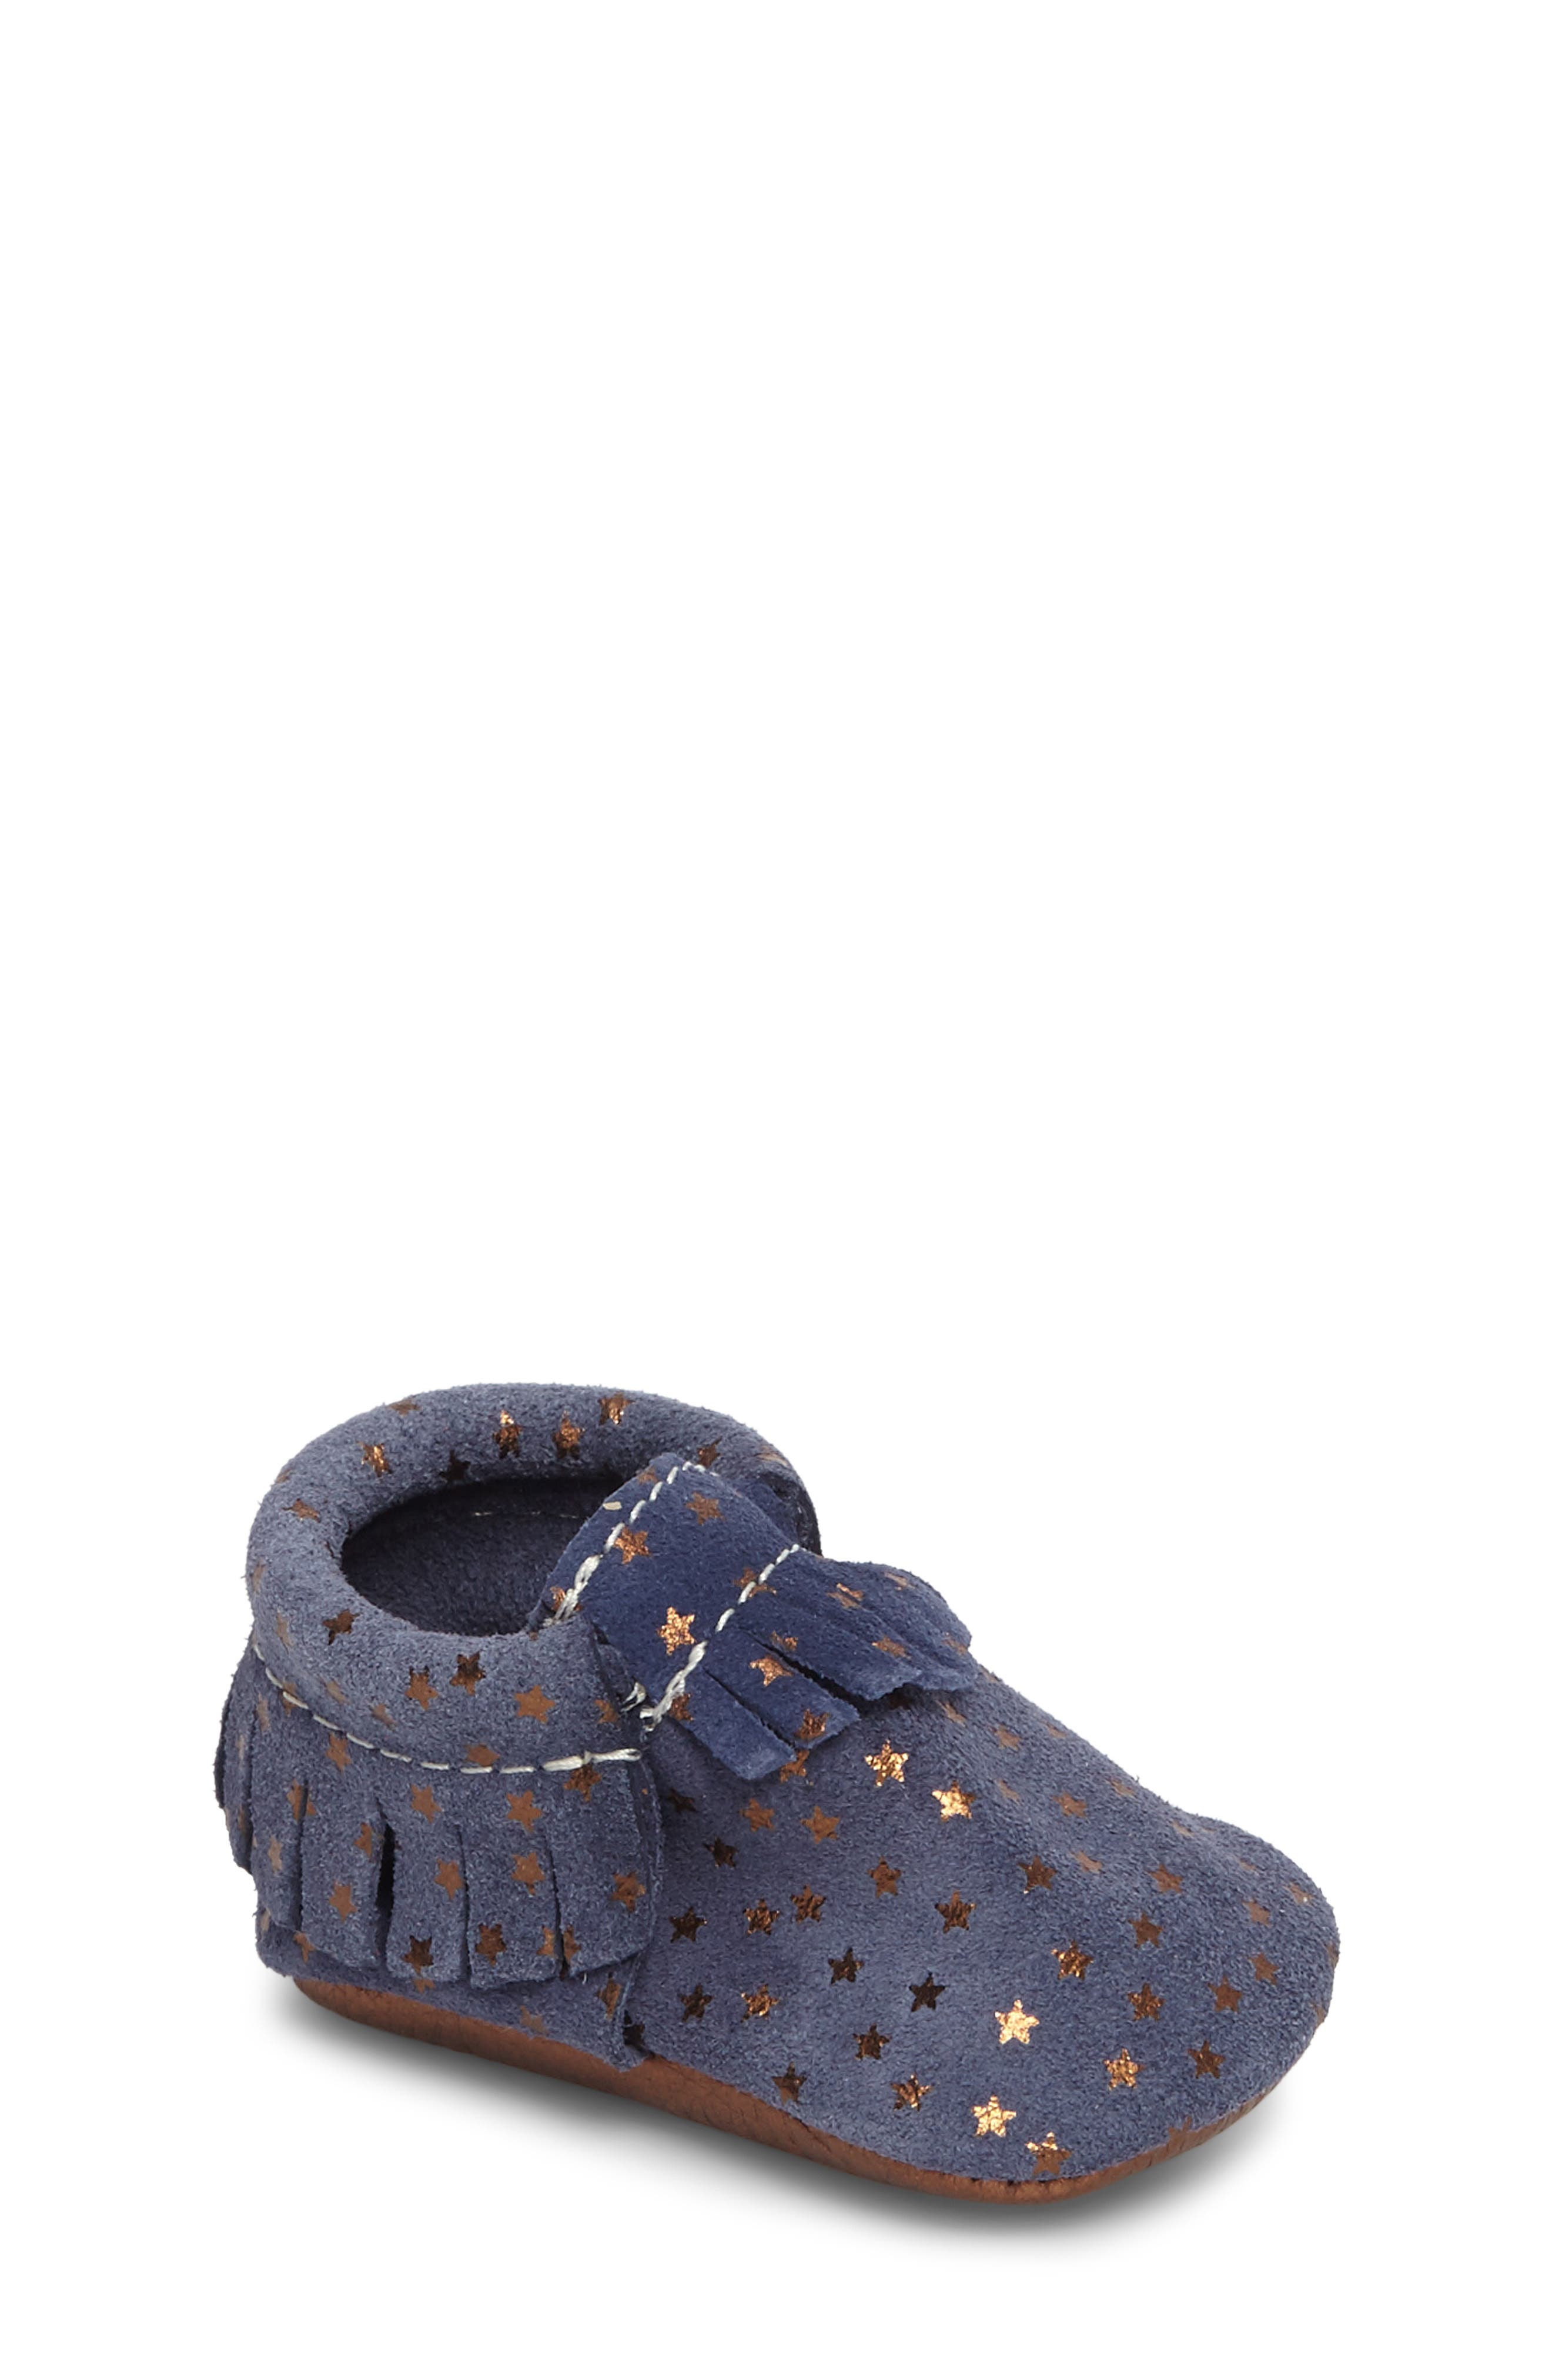 Main Image - Freshly Picked Starry Sky Moccasin (Baby)